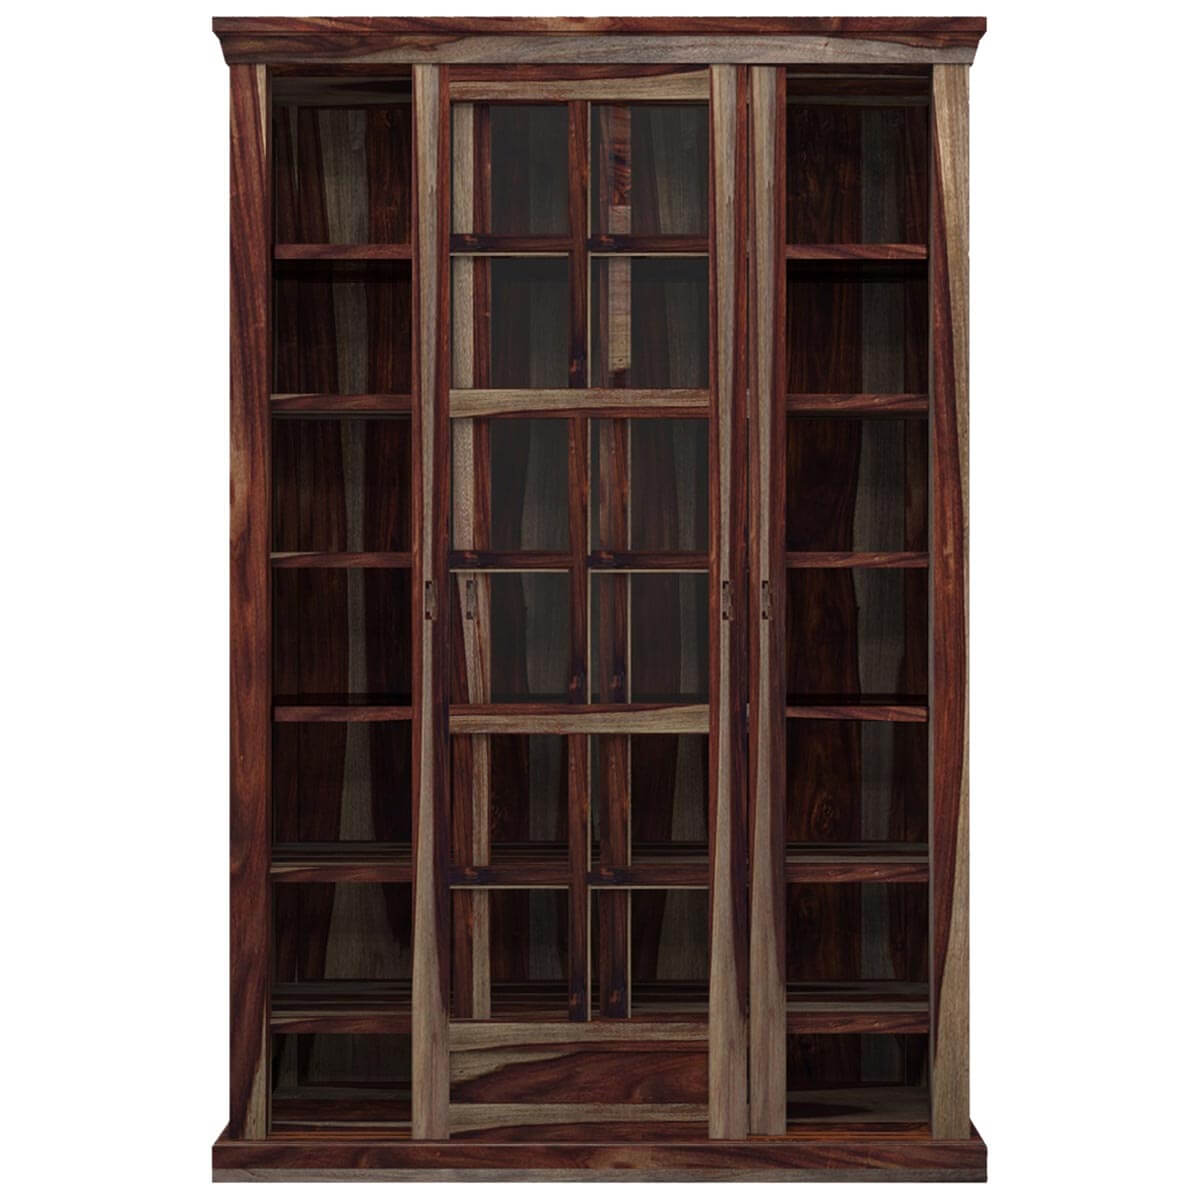 Large Cabinet With Doors Wooden Storage Cabinet With Doors Kashioricom Wooden Sofa